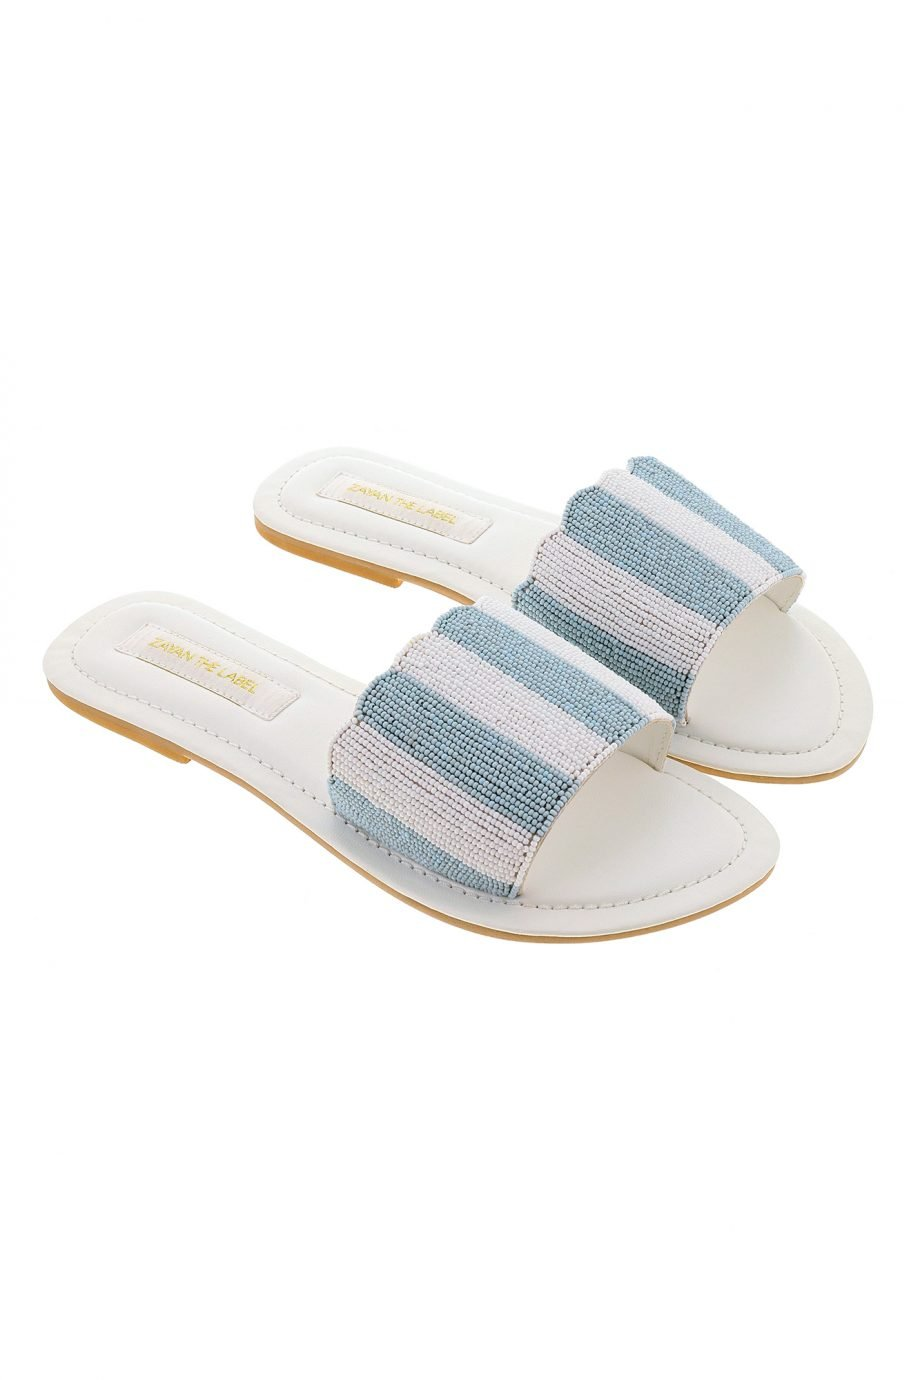 POSITANO BLUE SLIDES